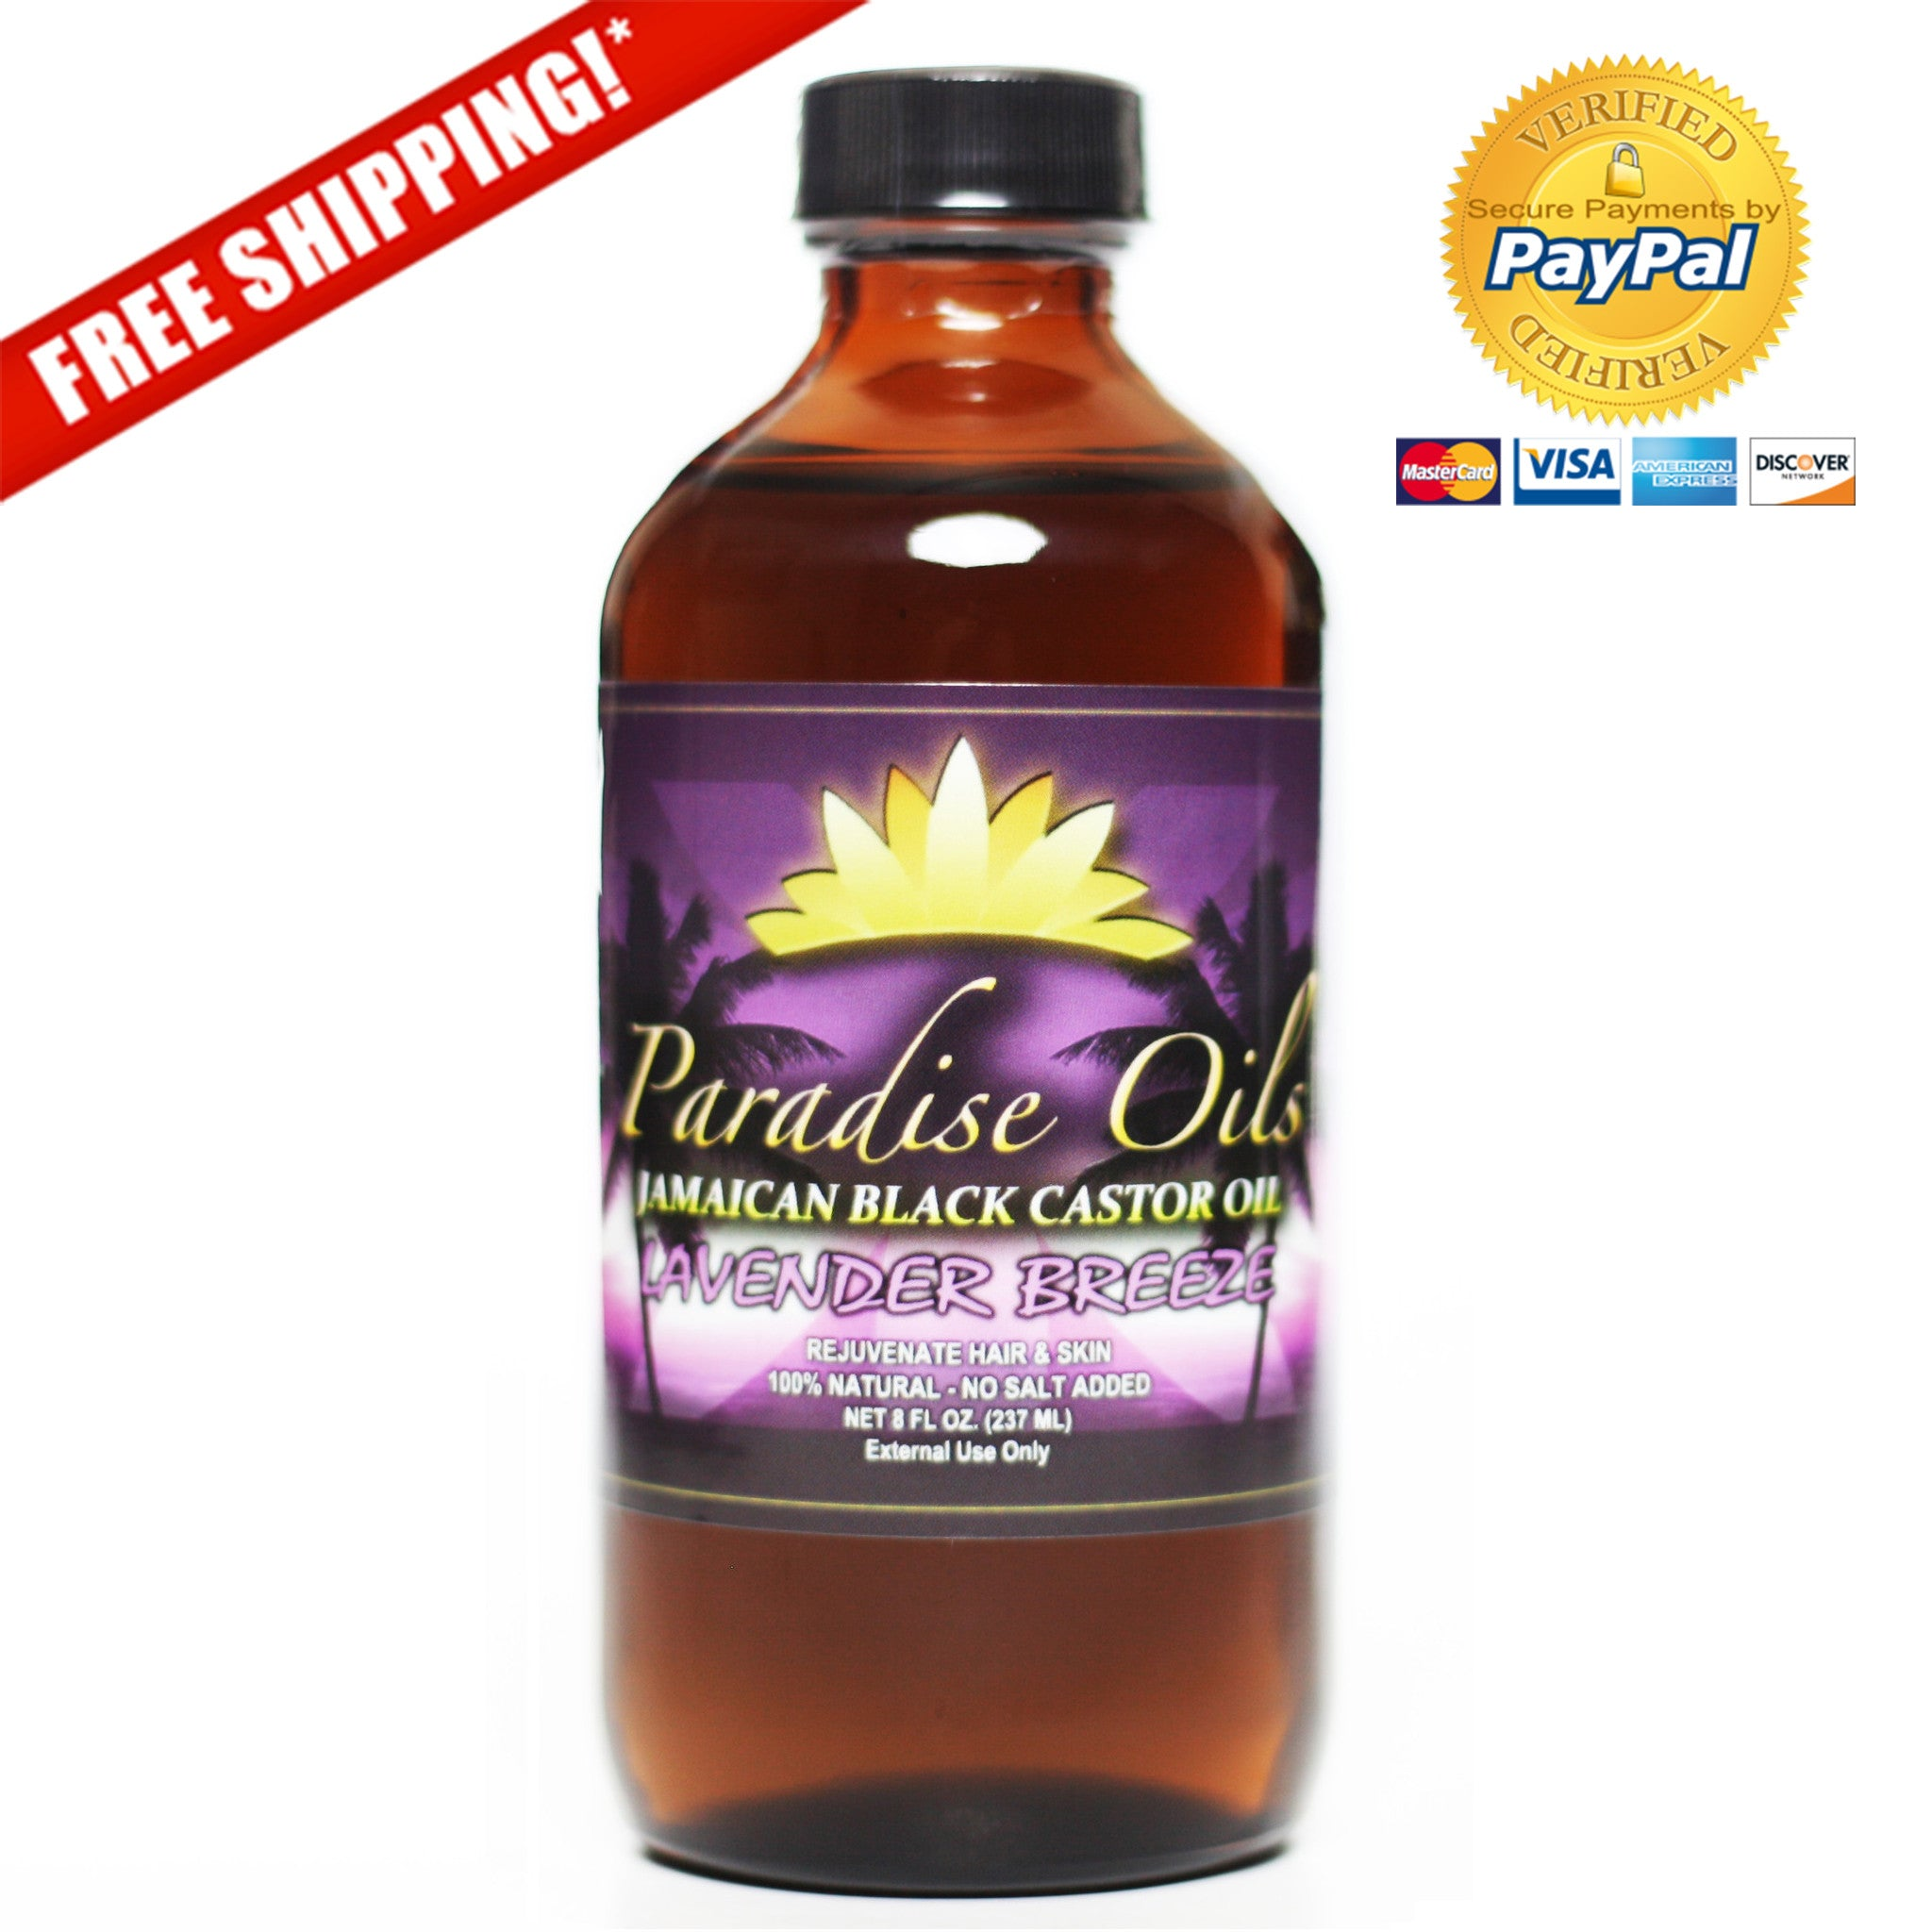 Paradise Oils Jamaican Black Castor Oil - Lavender Breeze